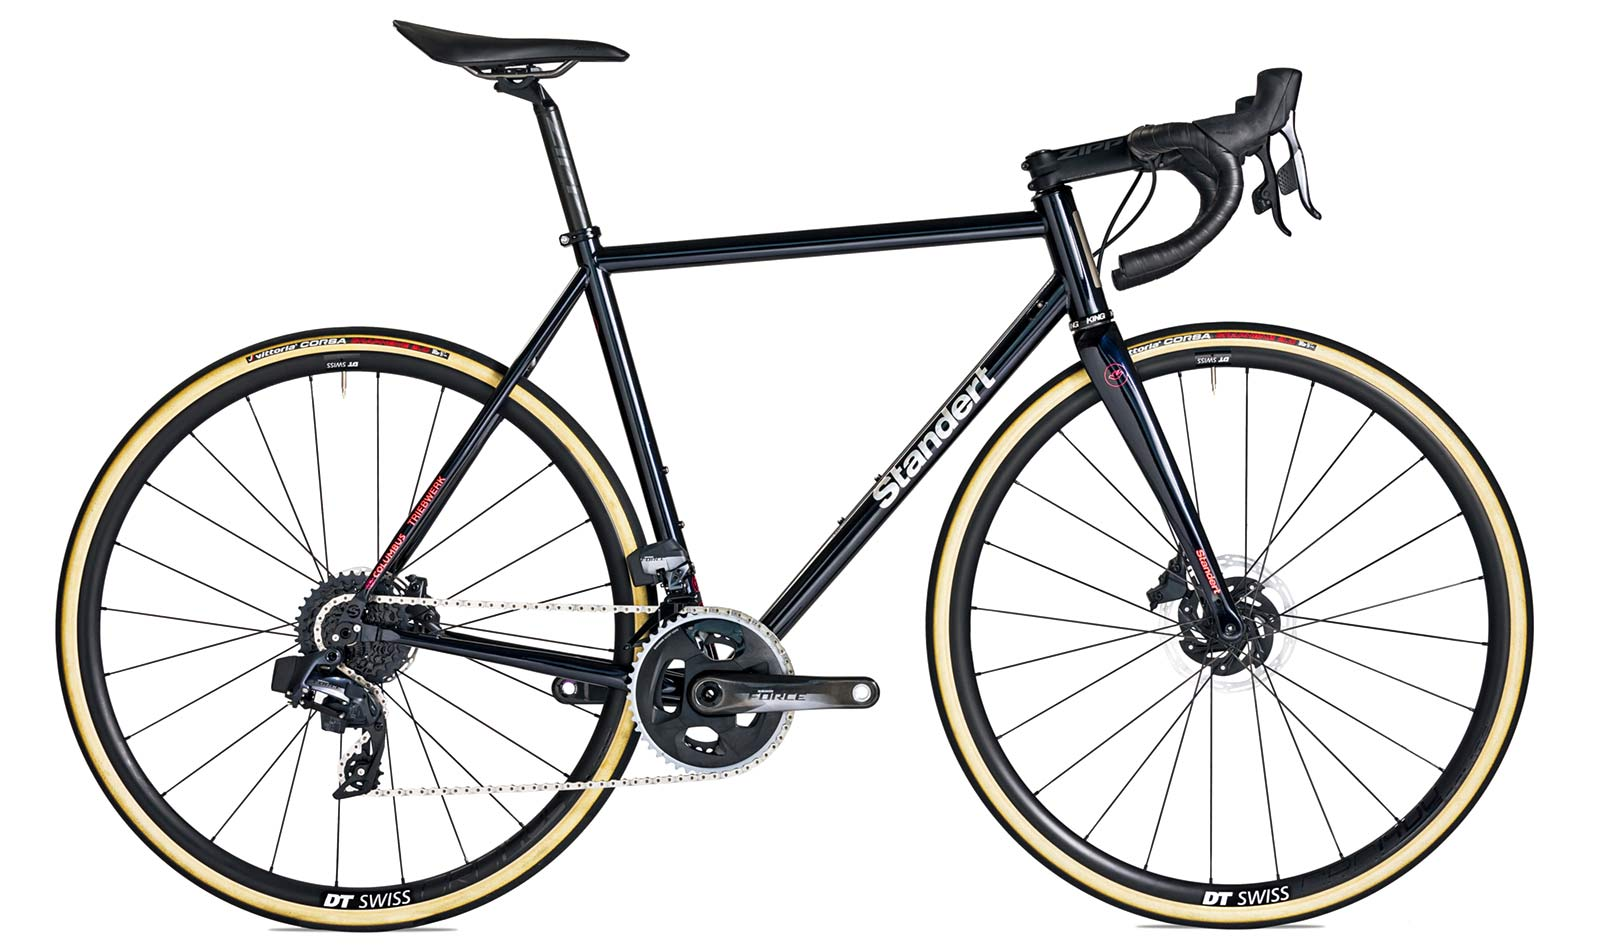 2021 Standert Triebwerk Disc all-road bike, updated modern Columbus steel road bike, black complete